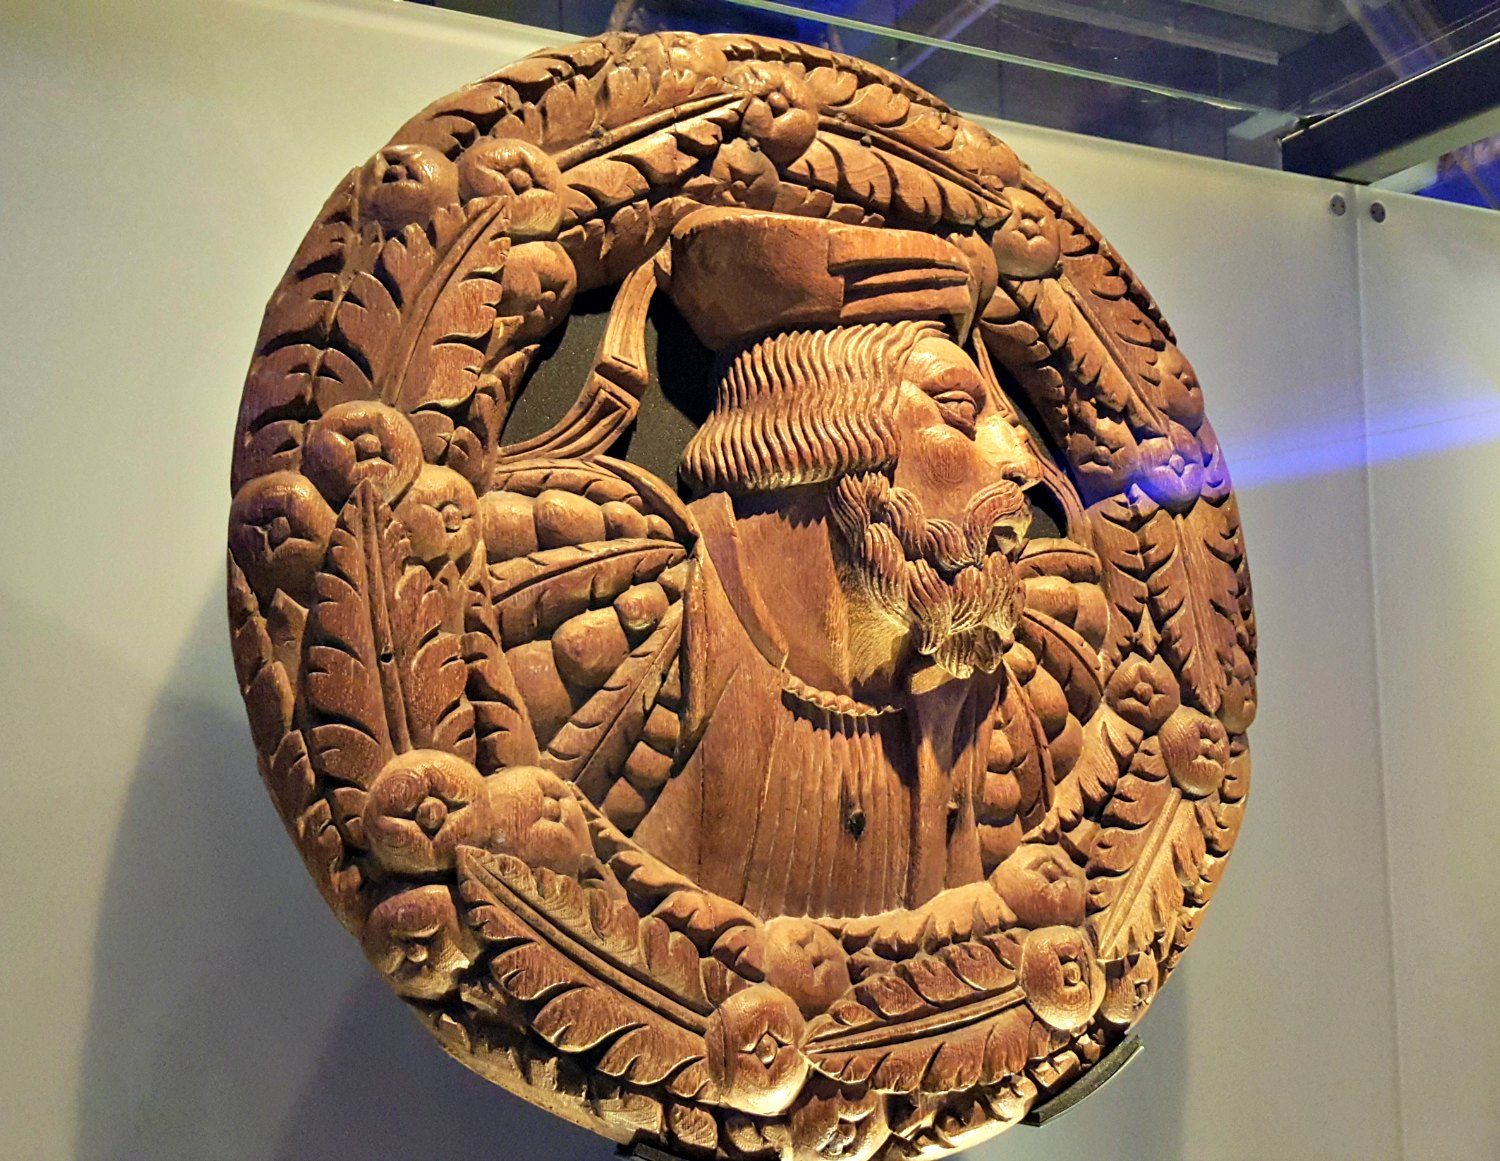 The Stirling Heads Gallery is a must-see– these 16th-century oak medallions are carved with images of kings, queens, nobles, Roman emperors and characters from the Bible and Classical mythology.